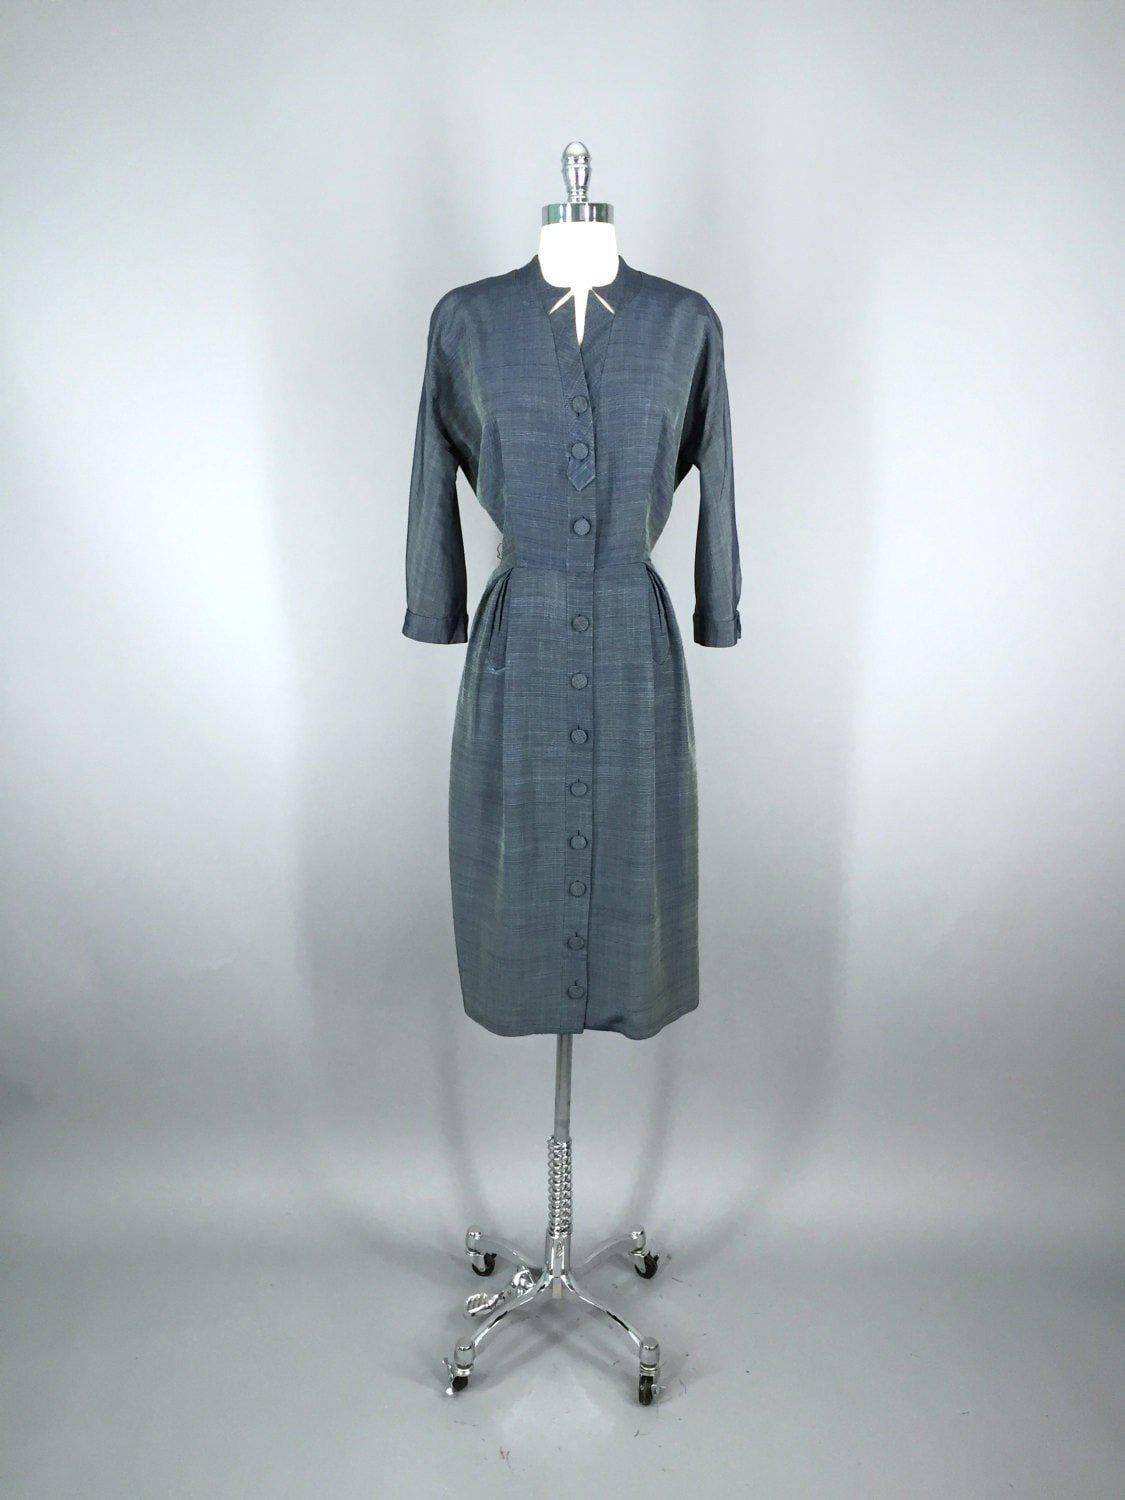 1950s Blue Grey New Look Vintage Day Dress Dress ThisBlueBird